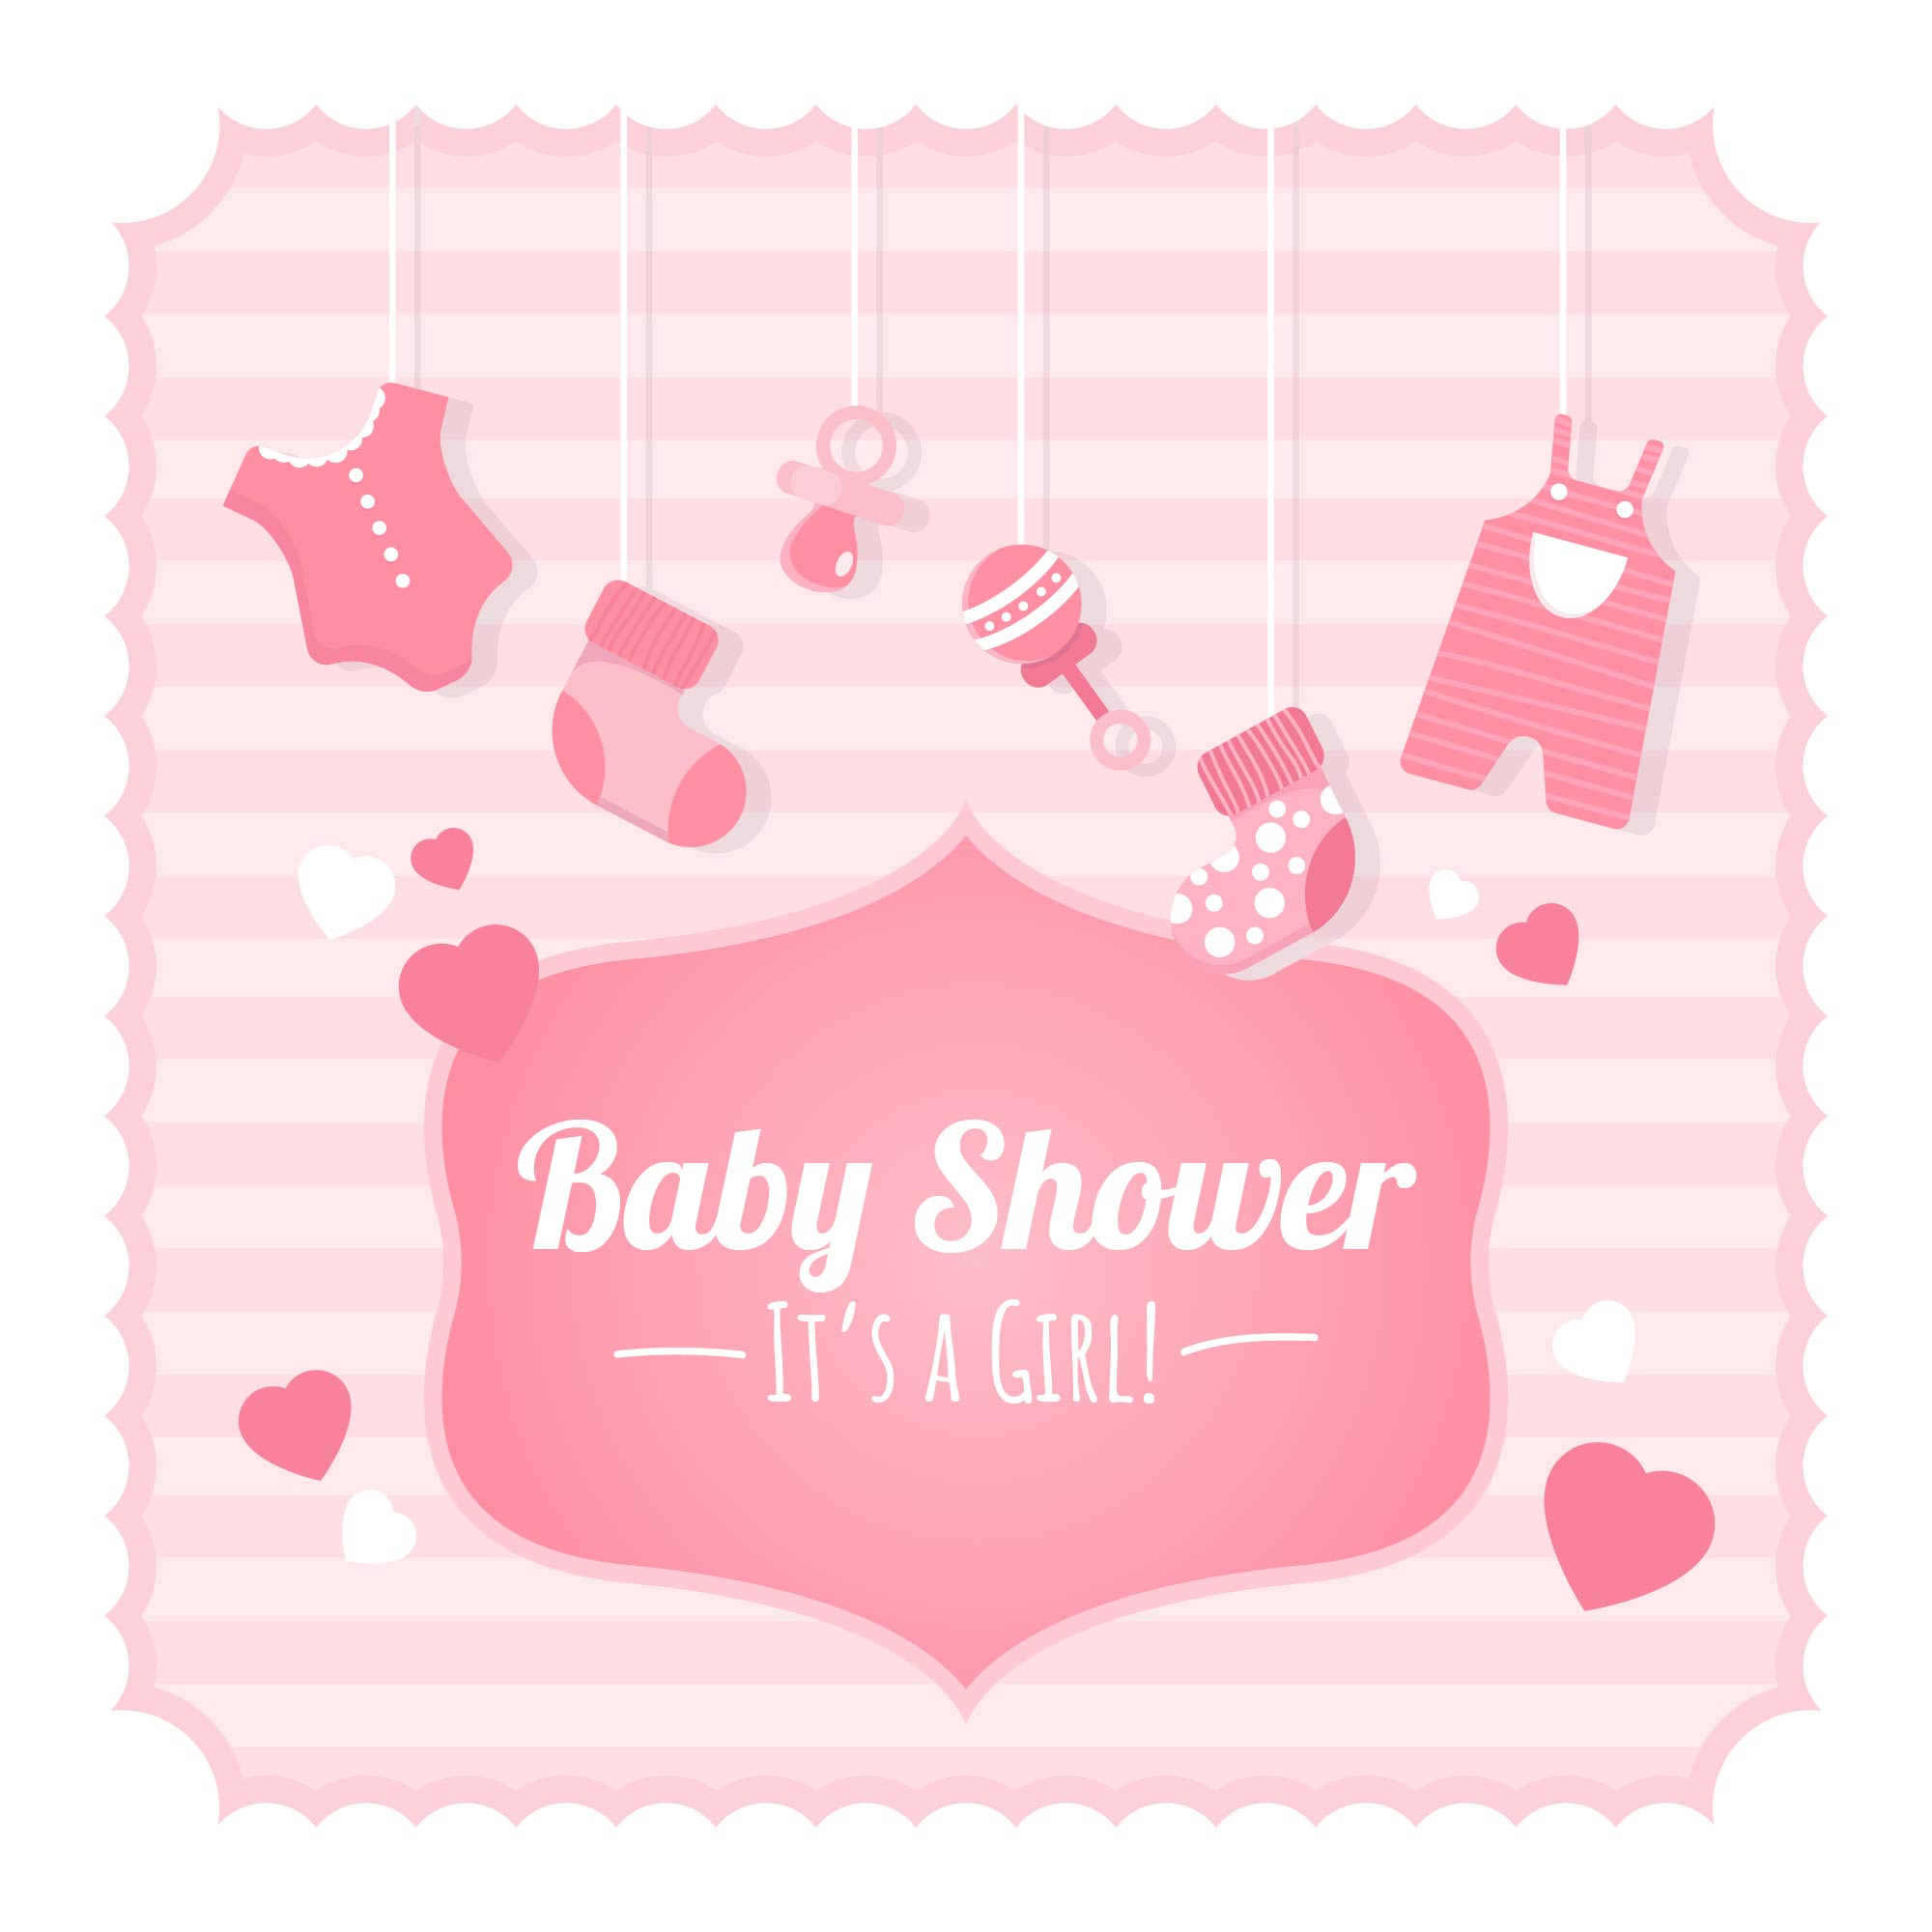 Baby Baby Online Baby Background Free Vector Art 111203 Free Downloads